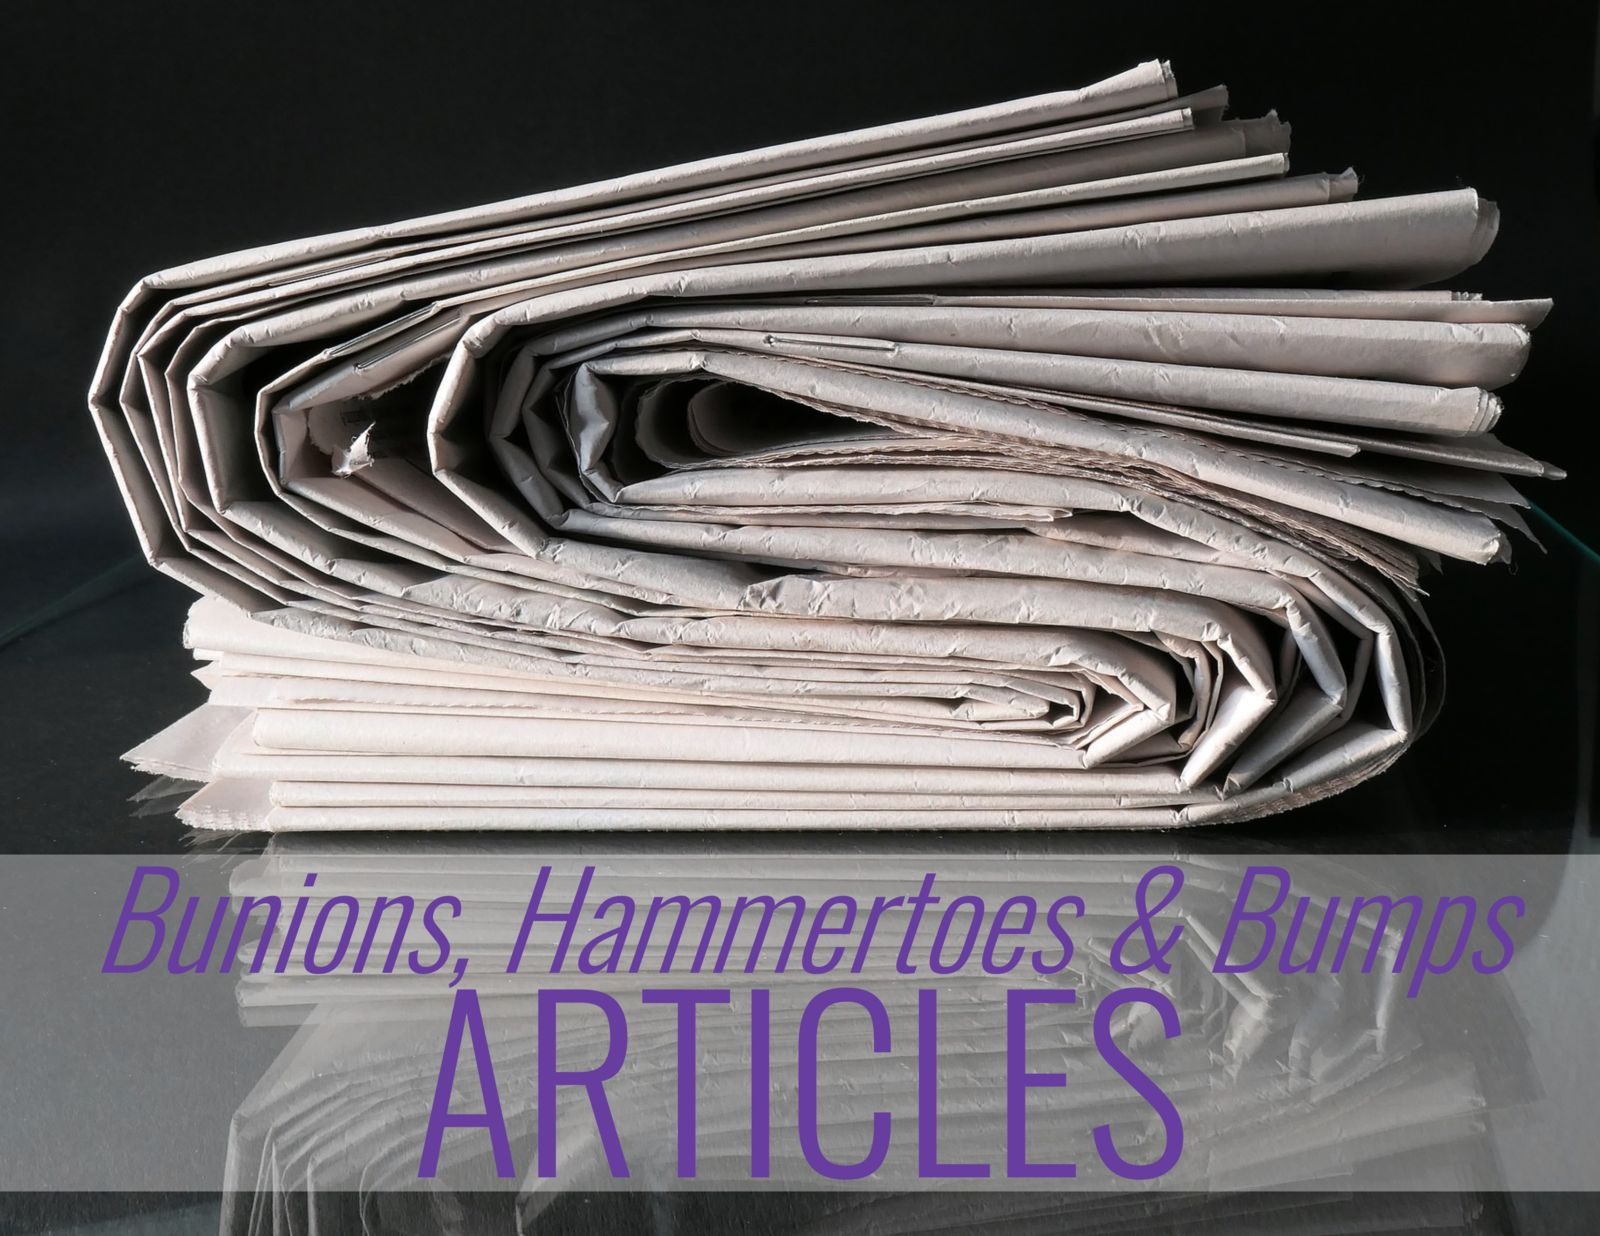 newspapers and the words: bunions, hammertoes and bumps articles